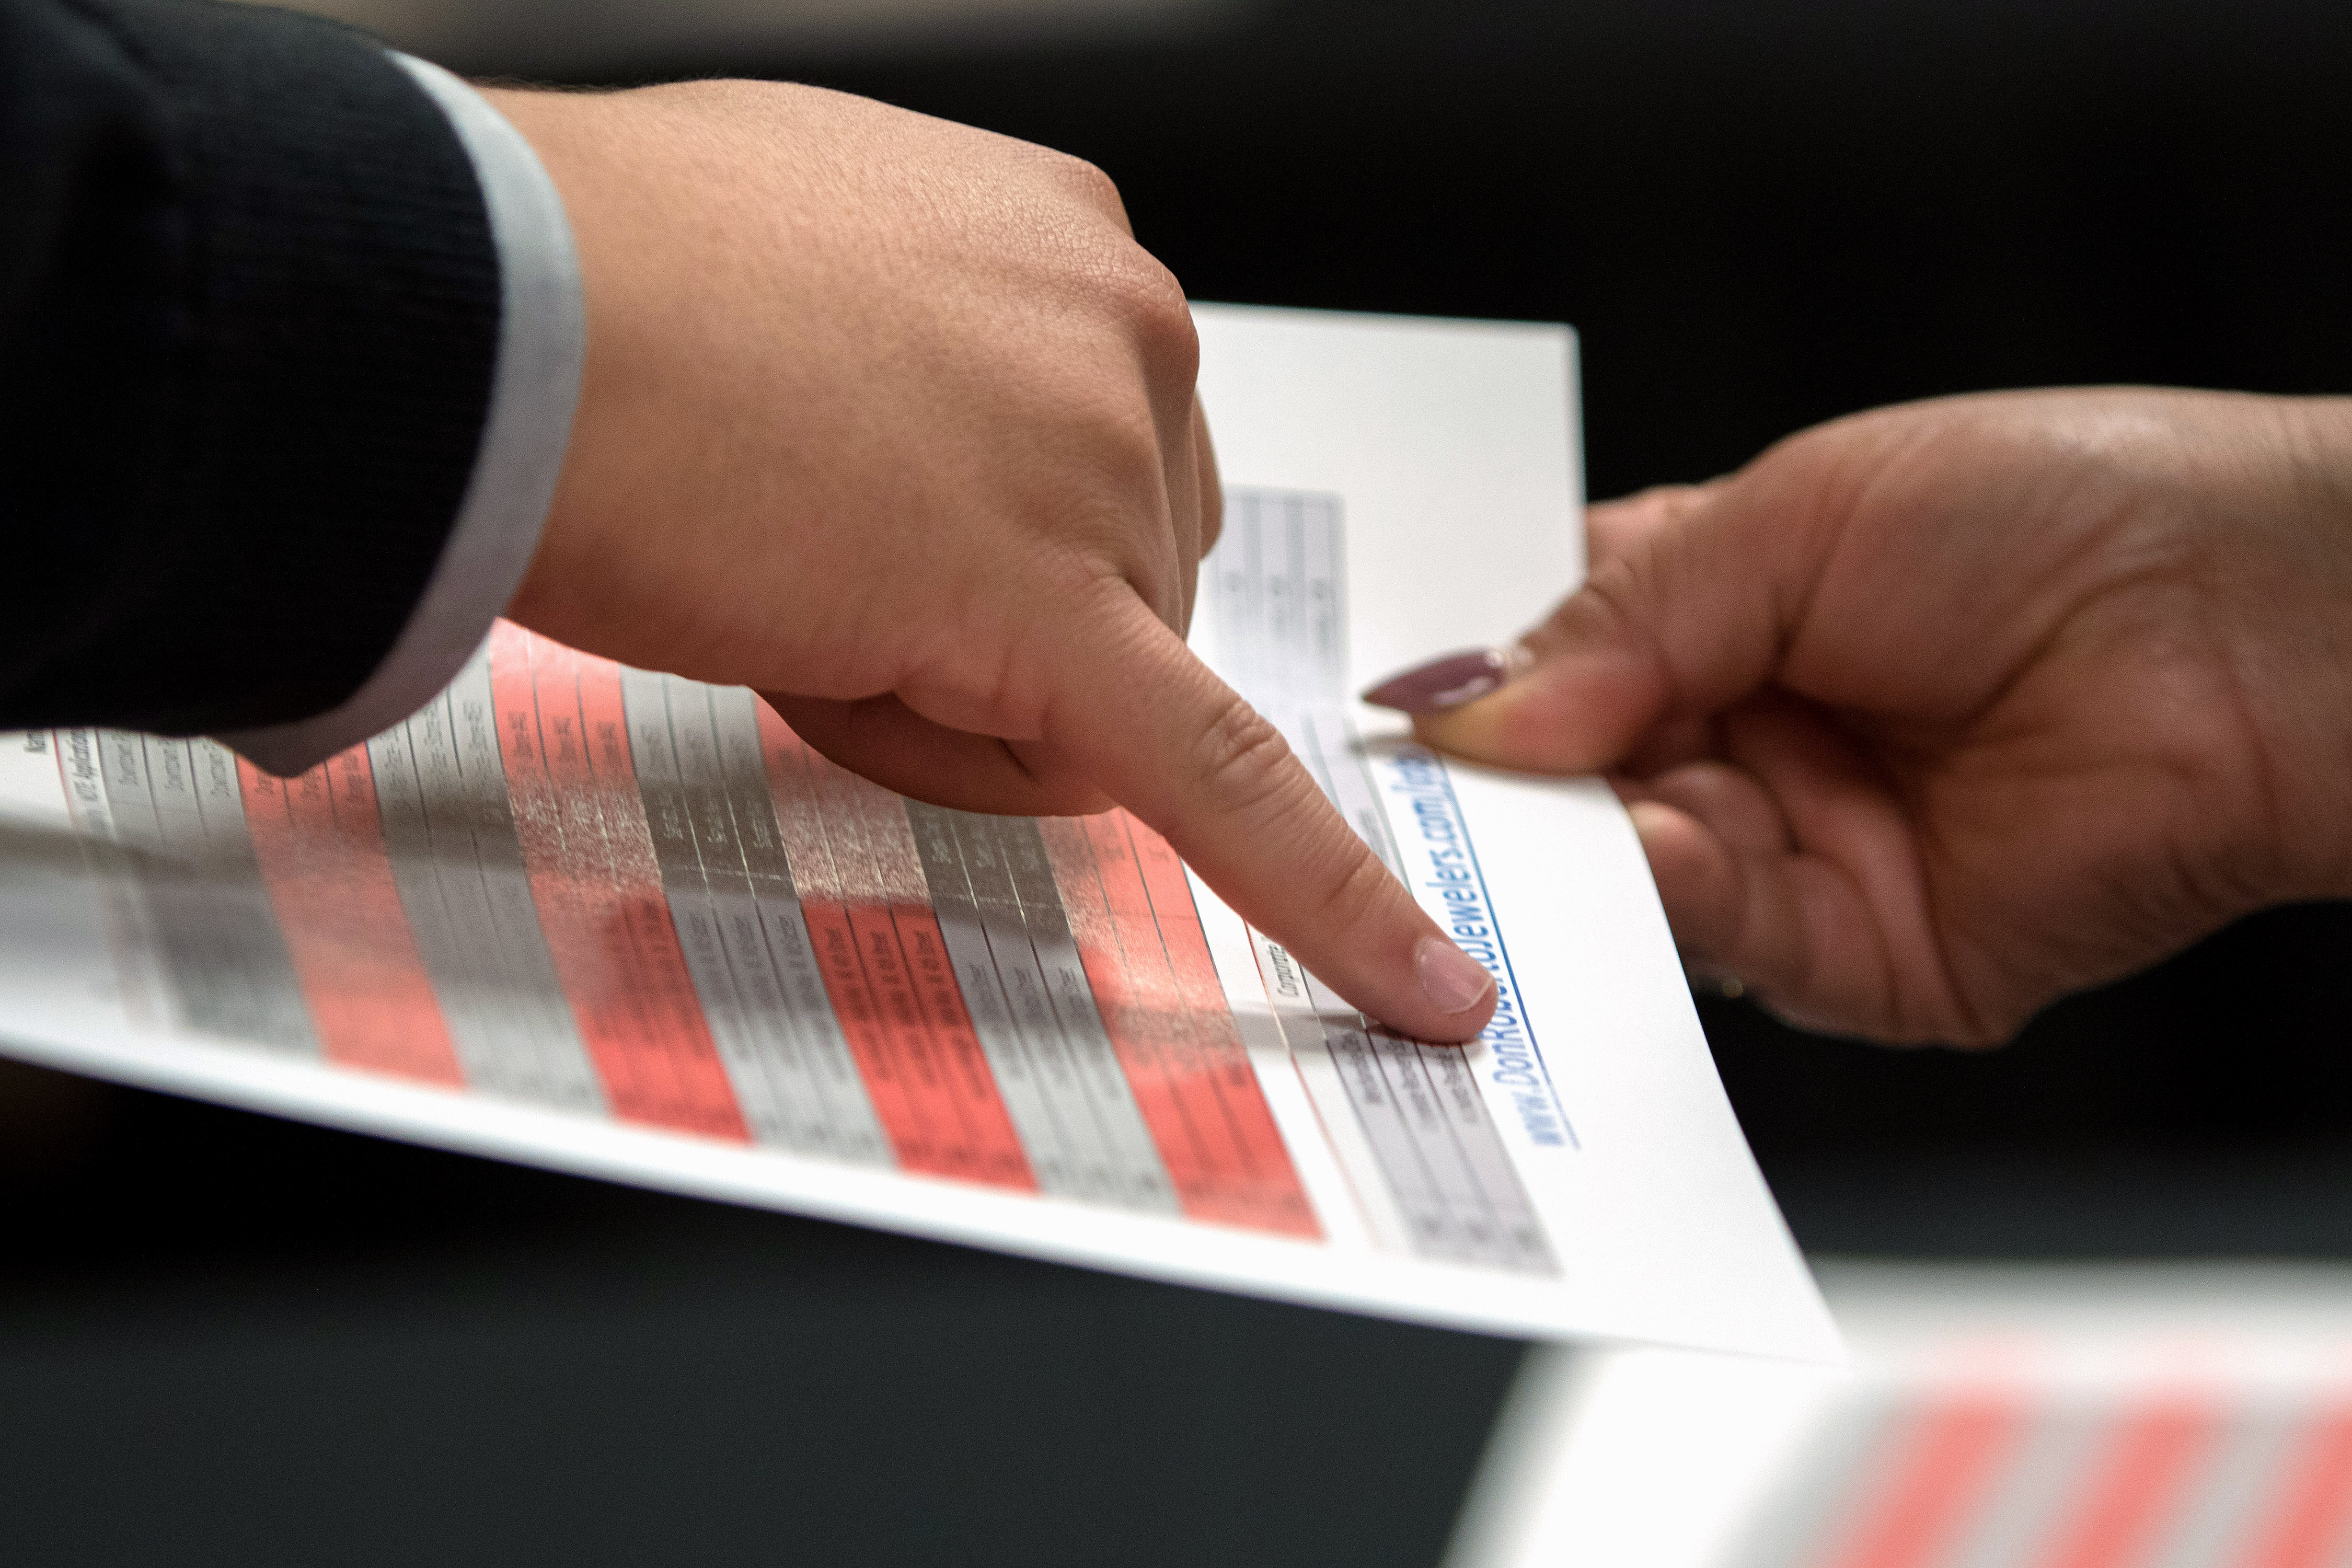 A representative goes over a pamphlet with a job seeker during an Orange County Choice Career Fair in Santa Ana, California, U.S., on Thursday, Oct. 6, 2016.